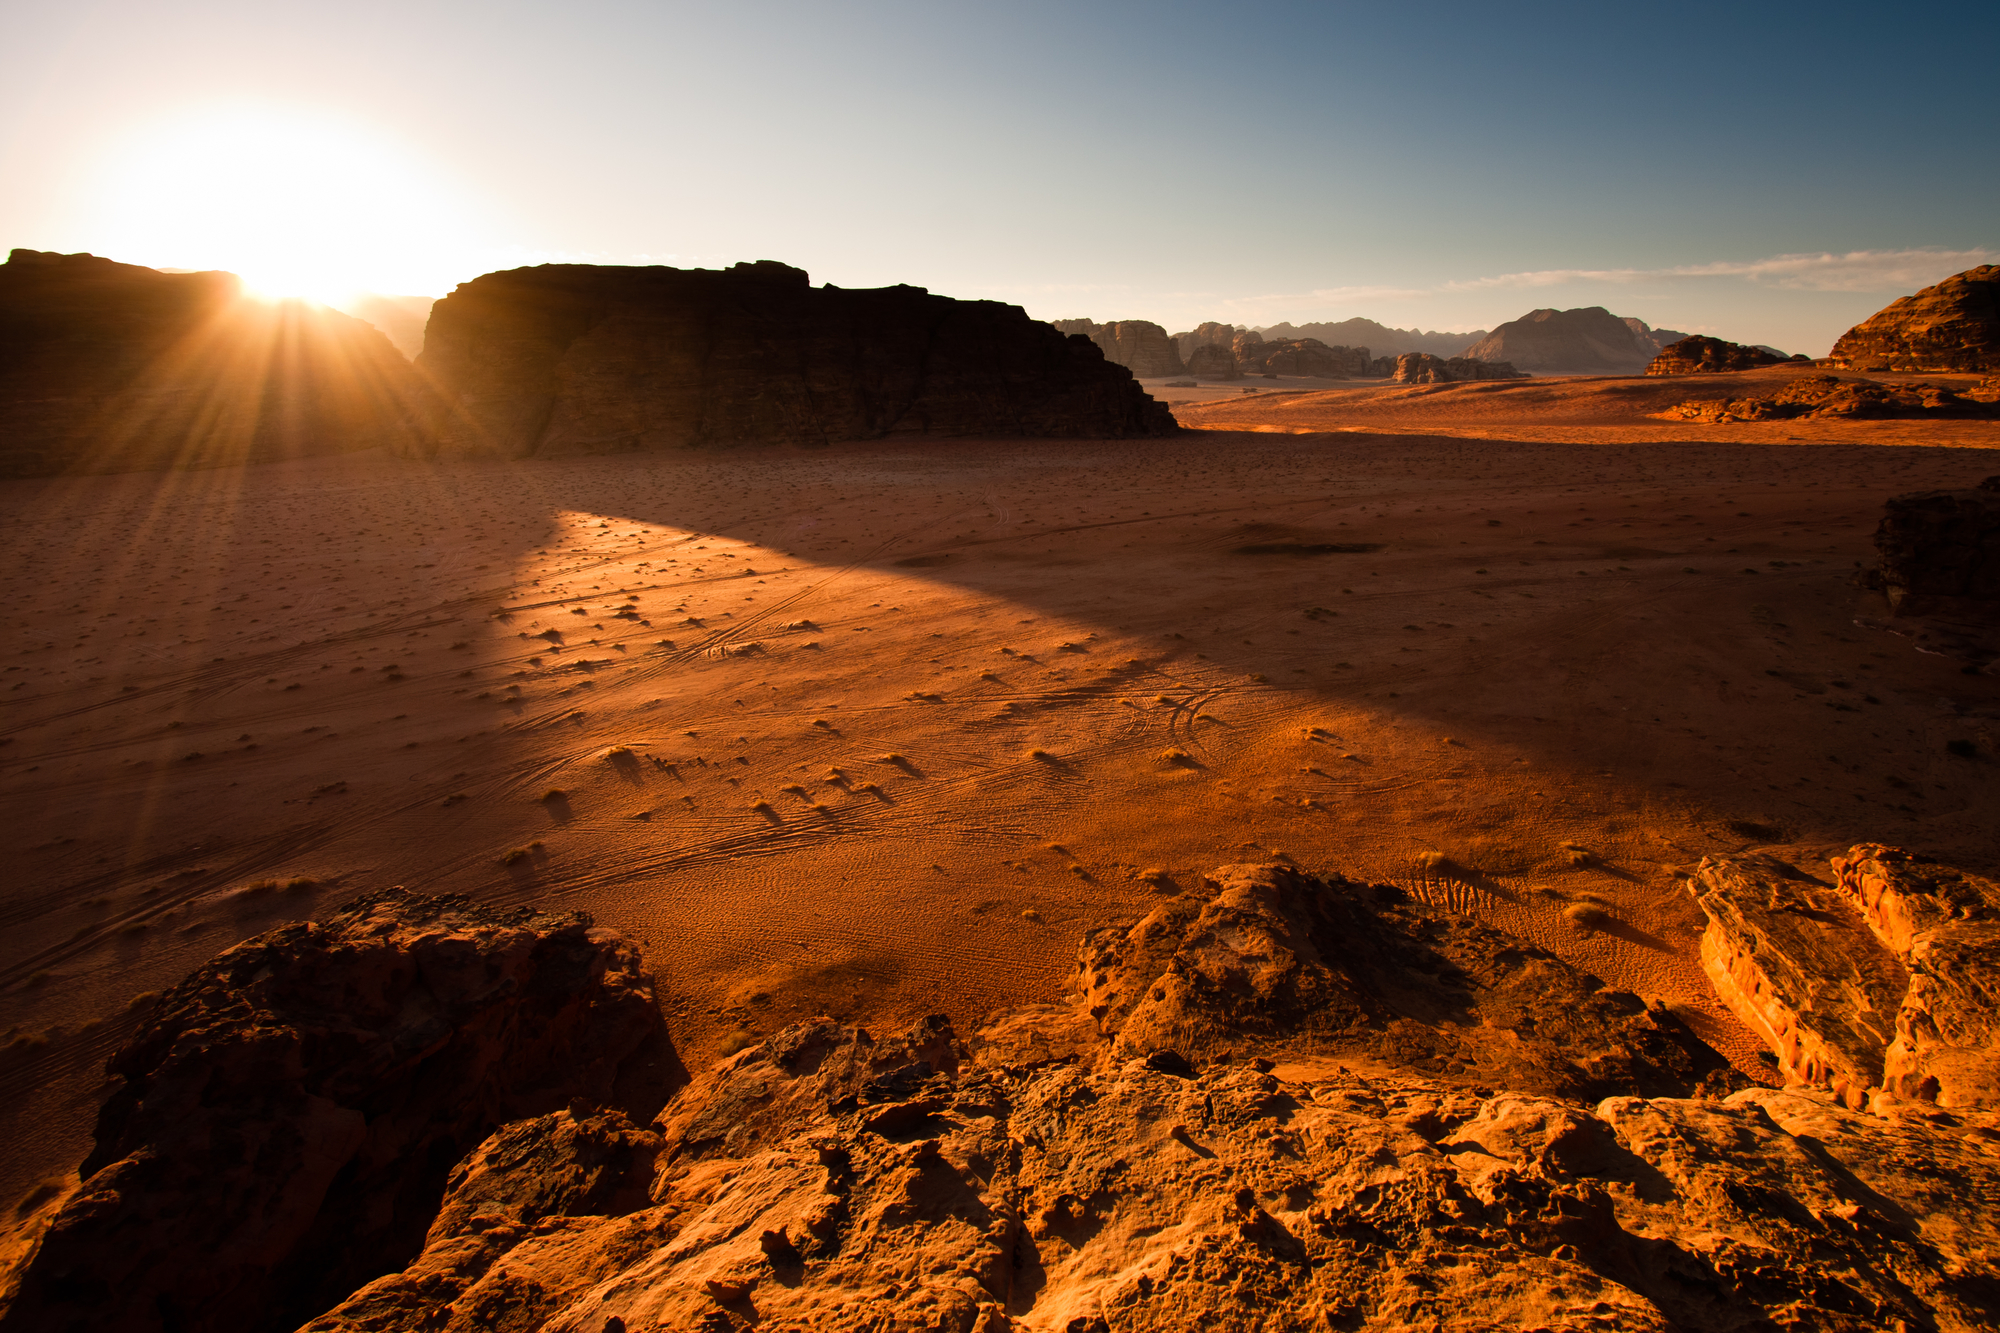 Sunrise in Wadi Rum